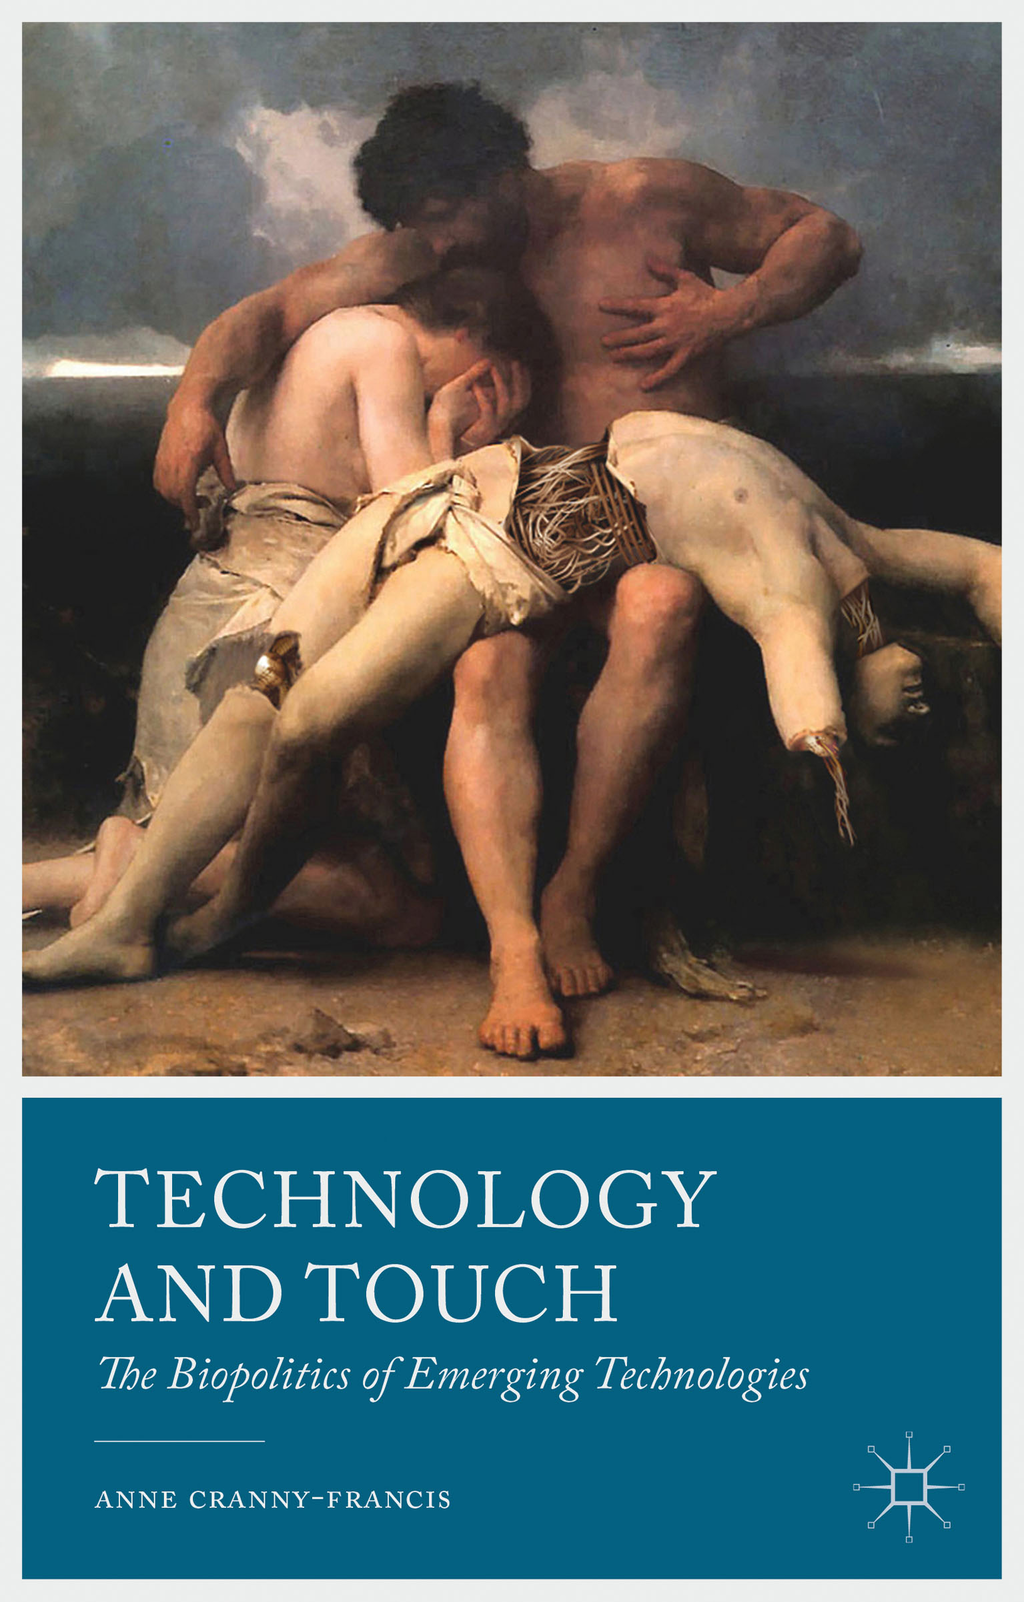 Technology and Touch The Biopolitics of Emerging Technologies